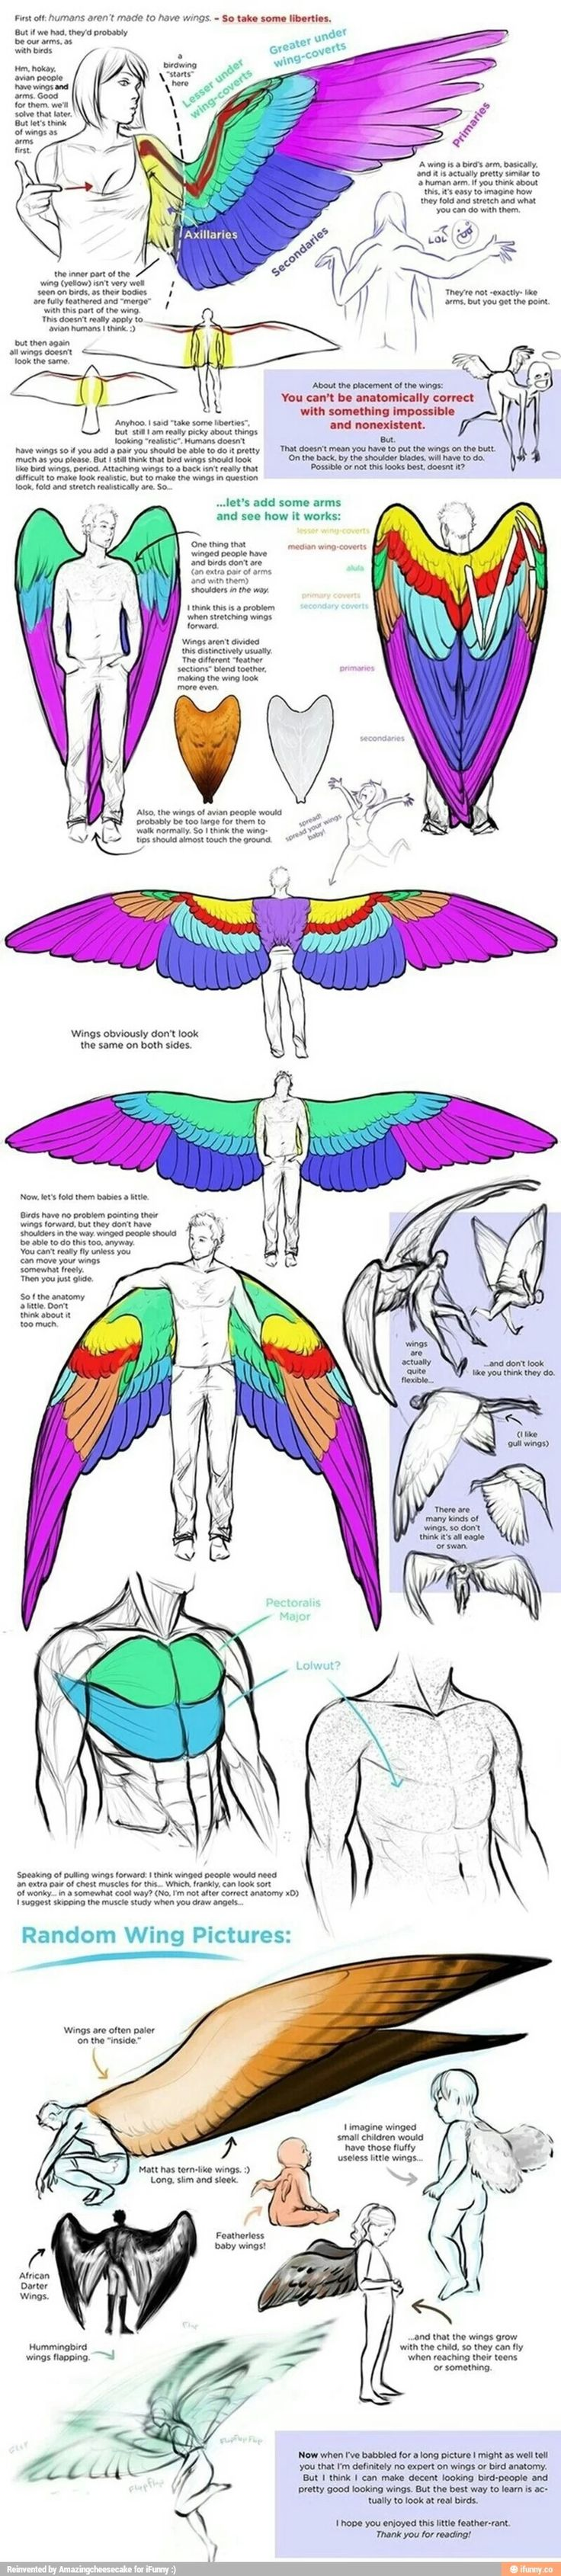 How to draw wings on people